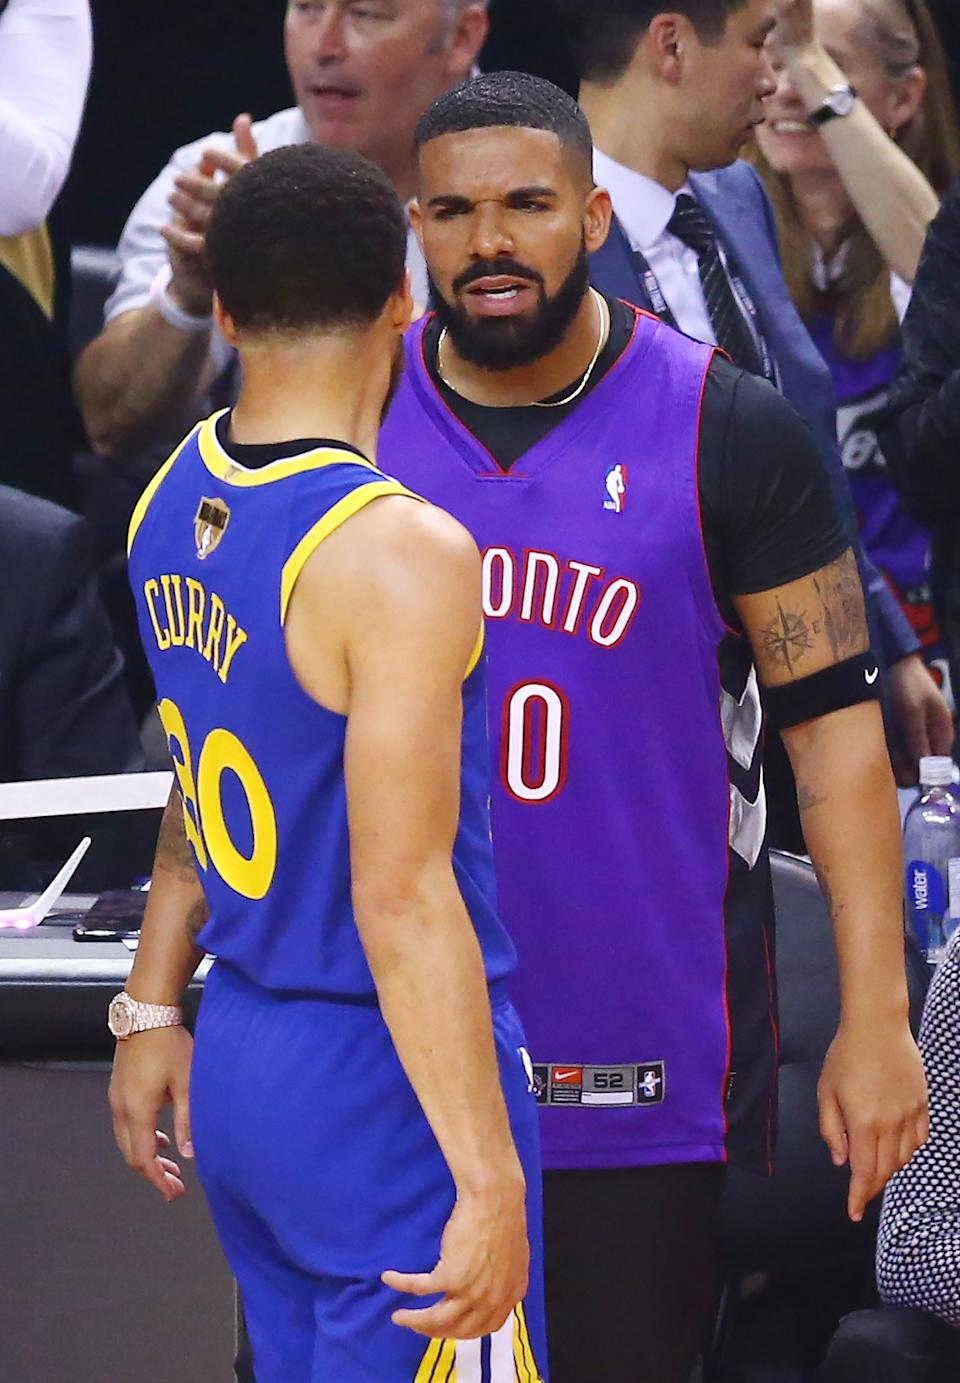 Rapper Drake and Stephen Curry #30 of the Golden State Warriors exchange words during a timeout in the first quarter during Game One of the 2019 NBA Finals between the Golden State Warriors and the Toronto Raptors at Scotiabank Arena on May 30, 2019 in Toronto, Canada. (Photo by Vaughn Ridley/Getty Images)